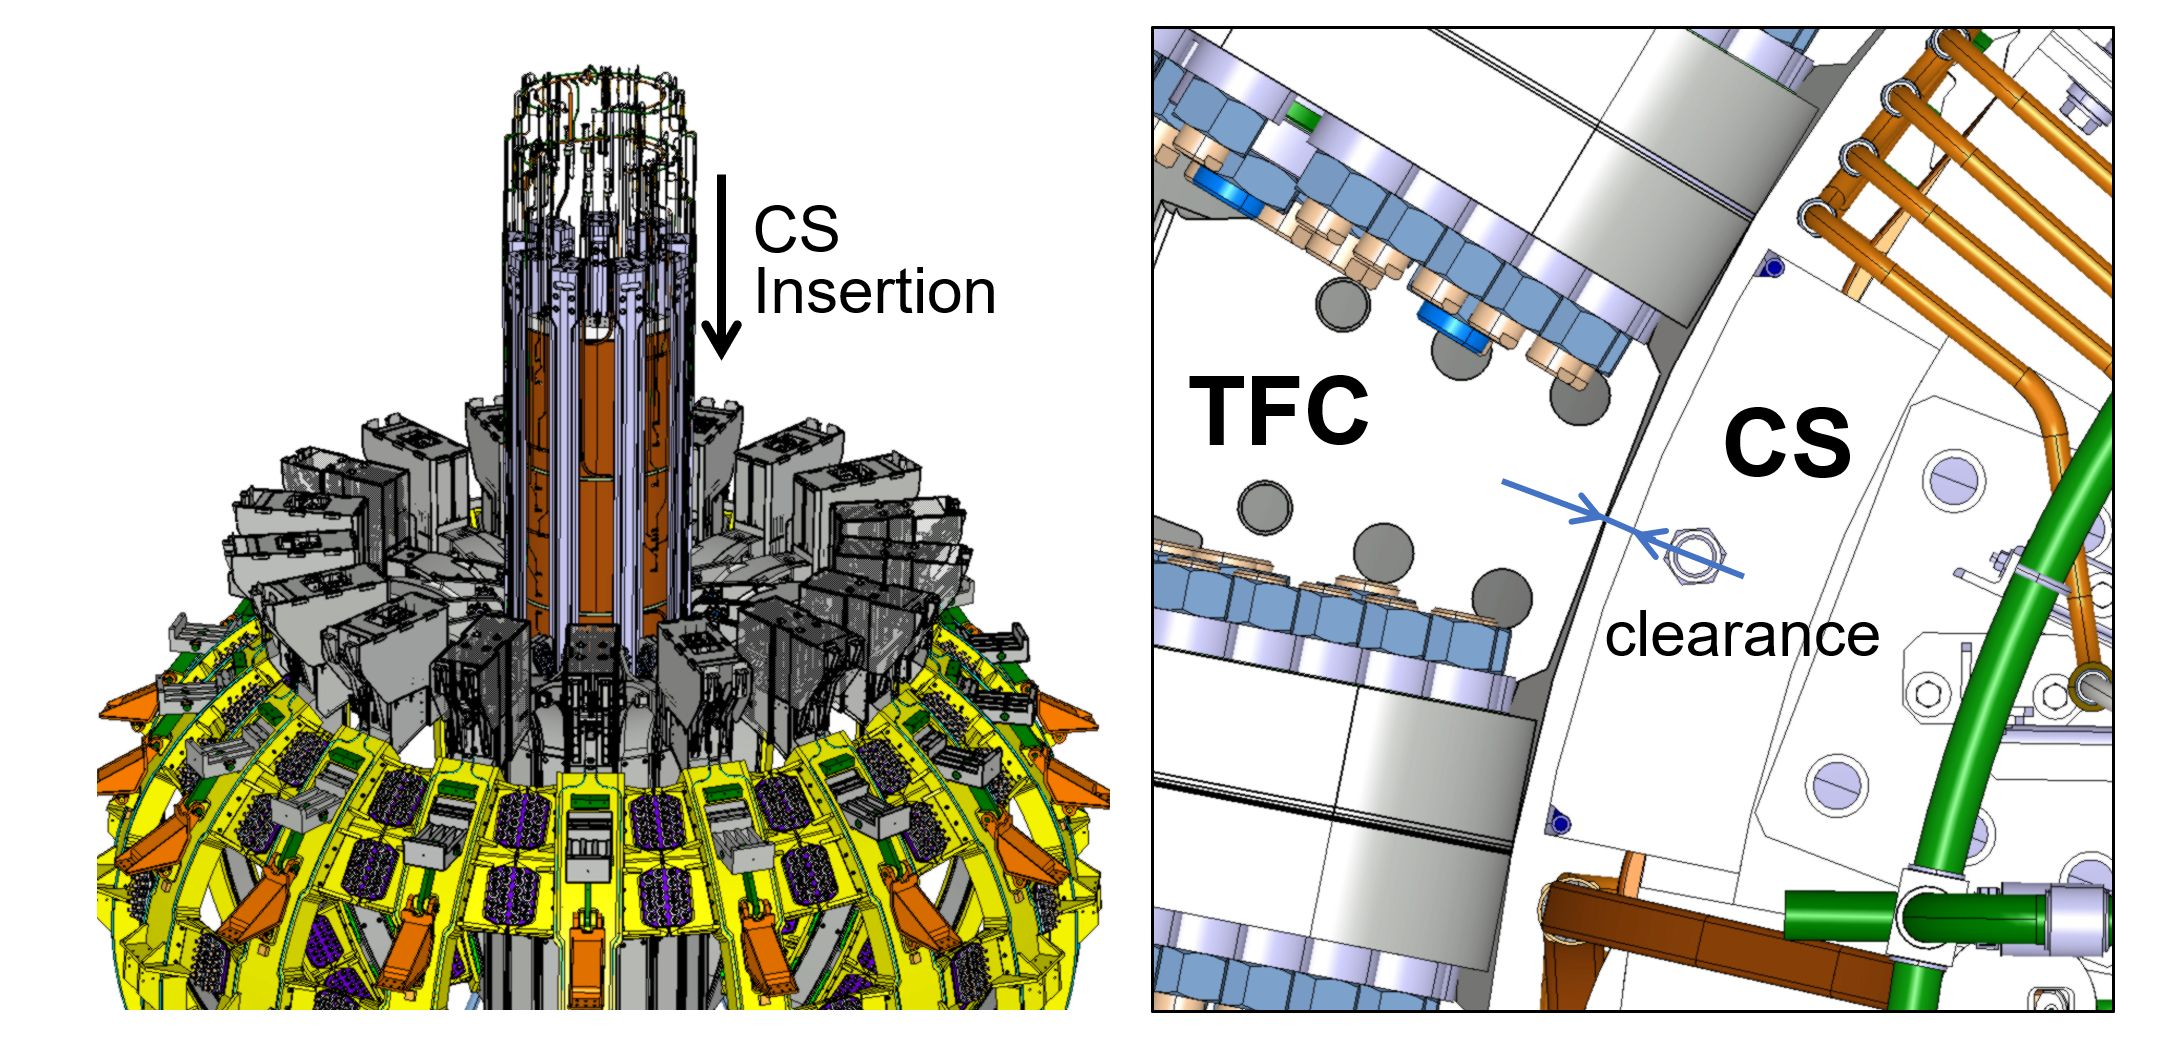 CS insertion and clearance between TFC and CS.